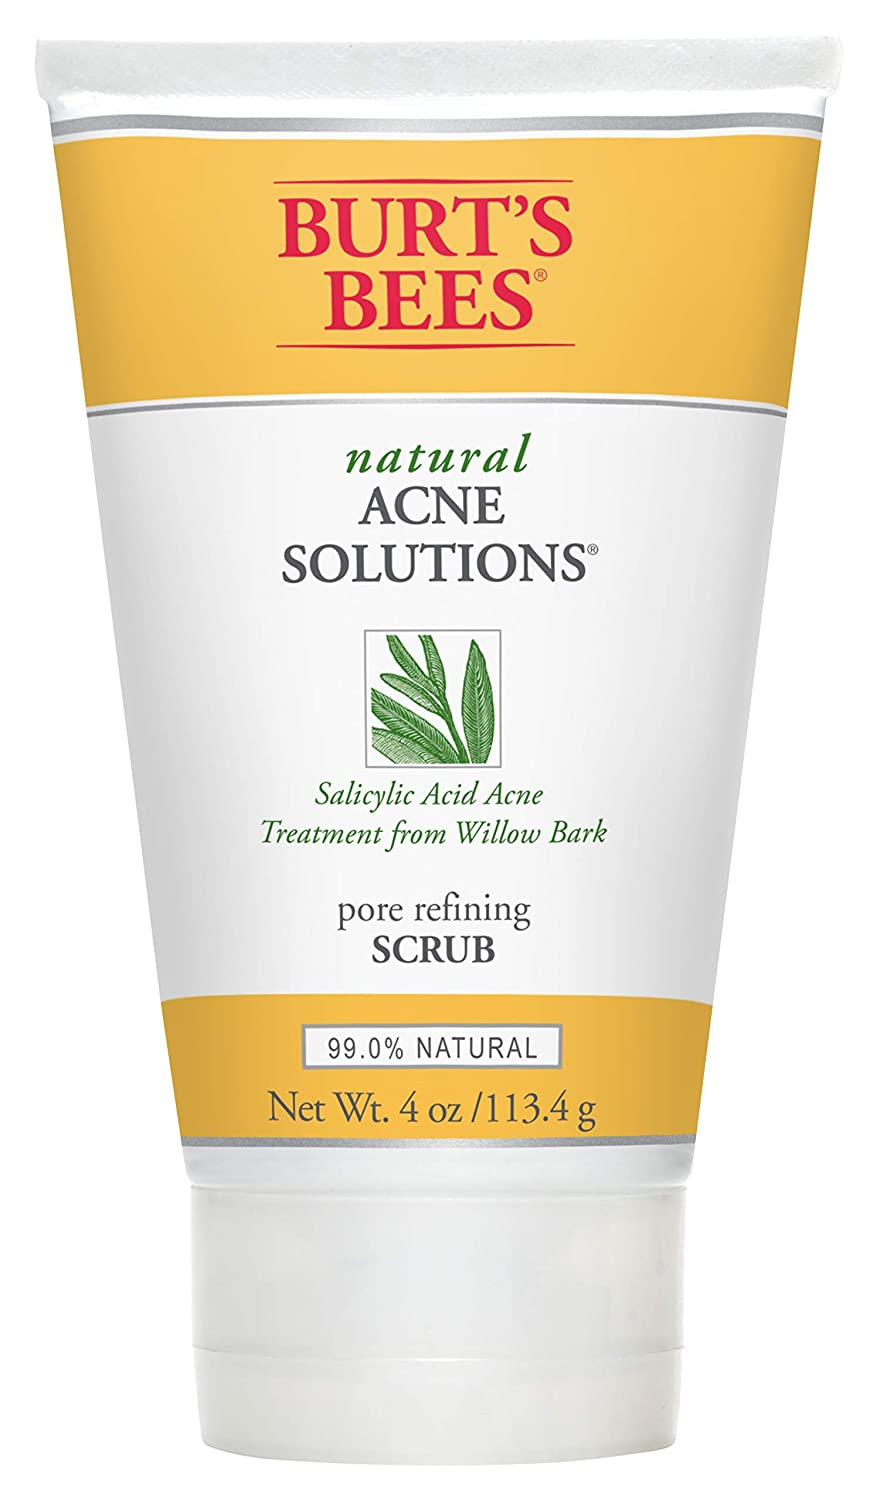 Best Face Scrubs For Acne - Burt's Bees Natural Acne Solutions Pore Refining Scrub, Exfoliating Face Wash for Oily Skin